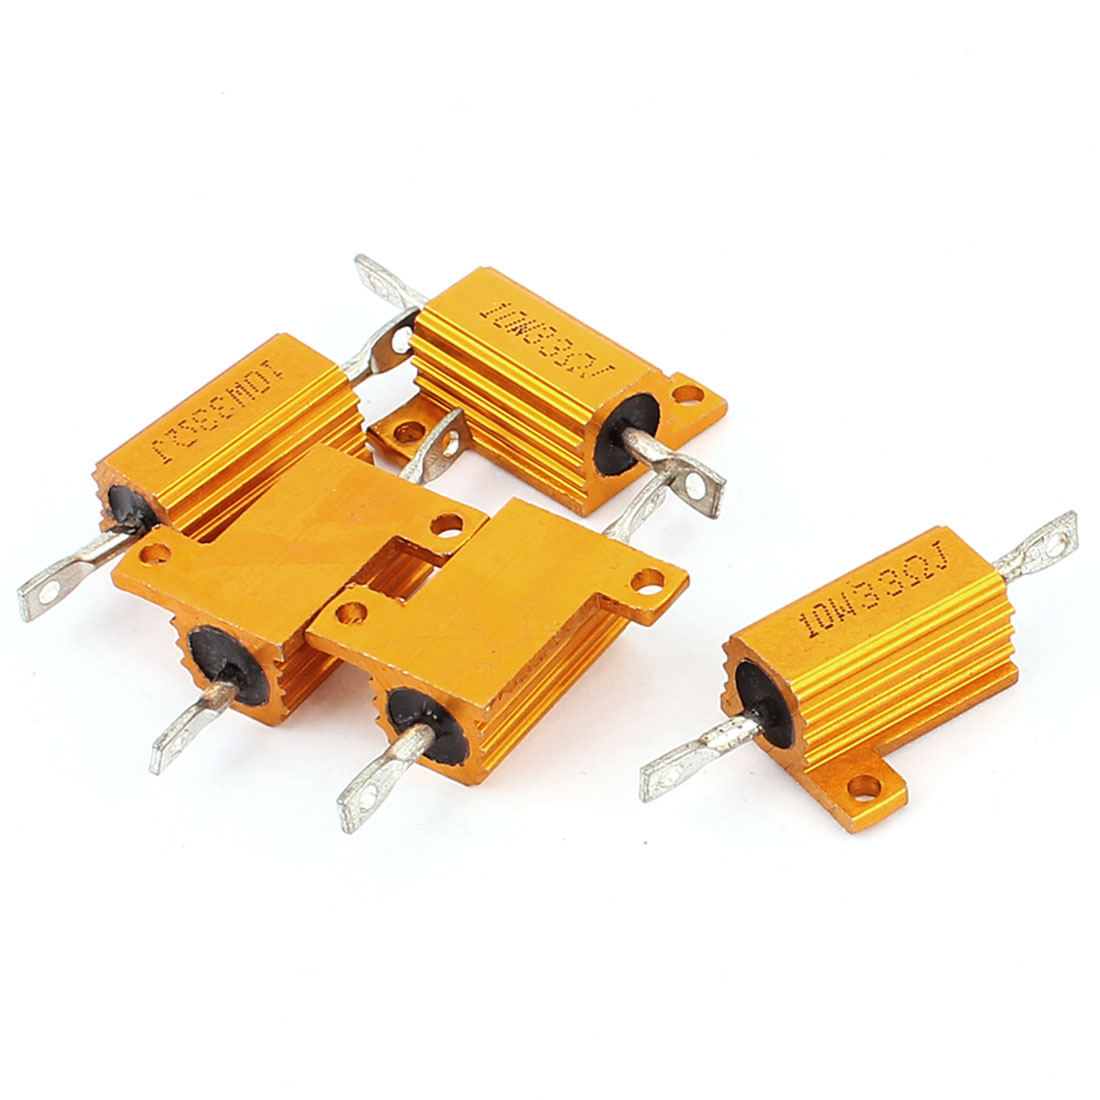 5 Pcs 33 Ohm 10W Aluminium Housing Chassis Mount Wirewound Power Resistors Gold Tone